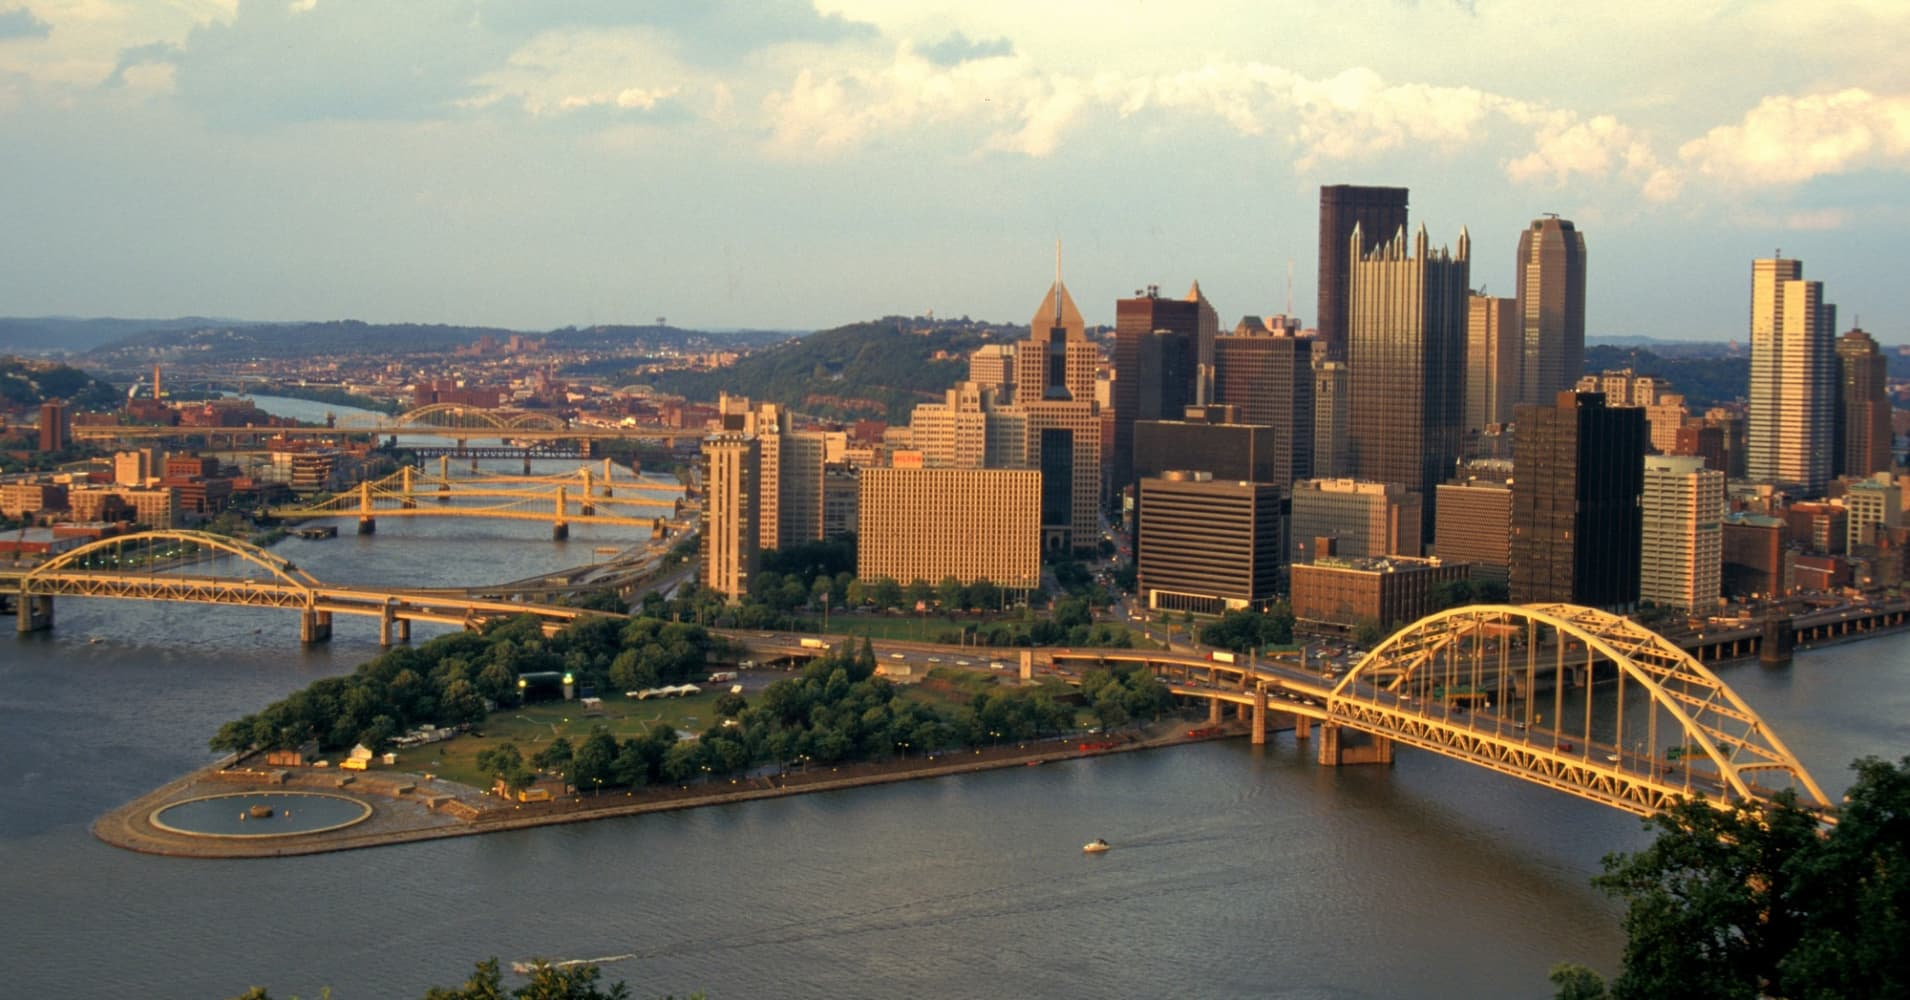 Pittsburgh, Pa. is the No. 1 city for millennials according to the report